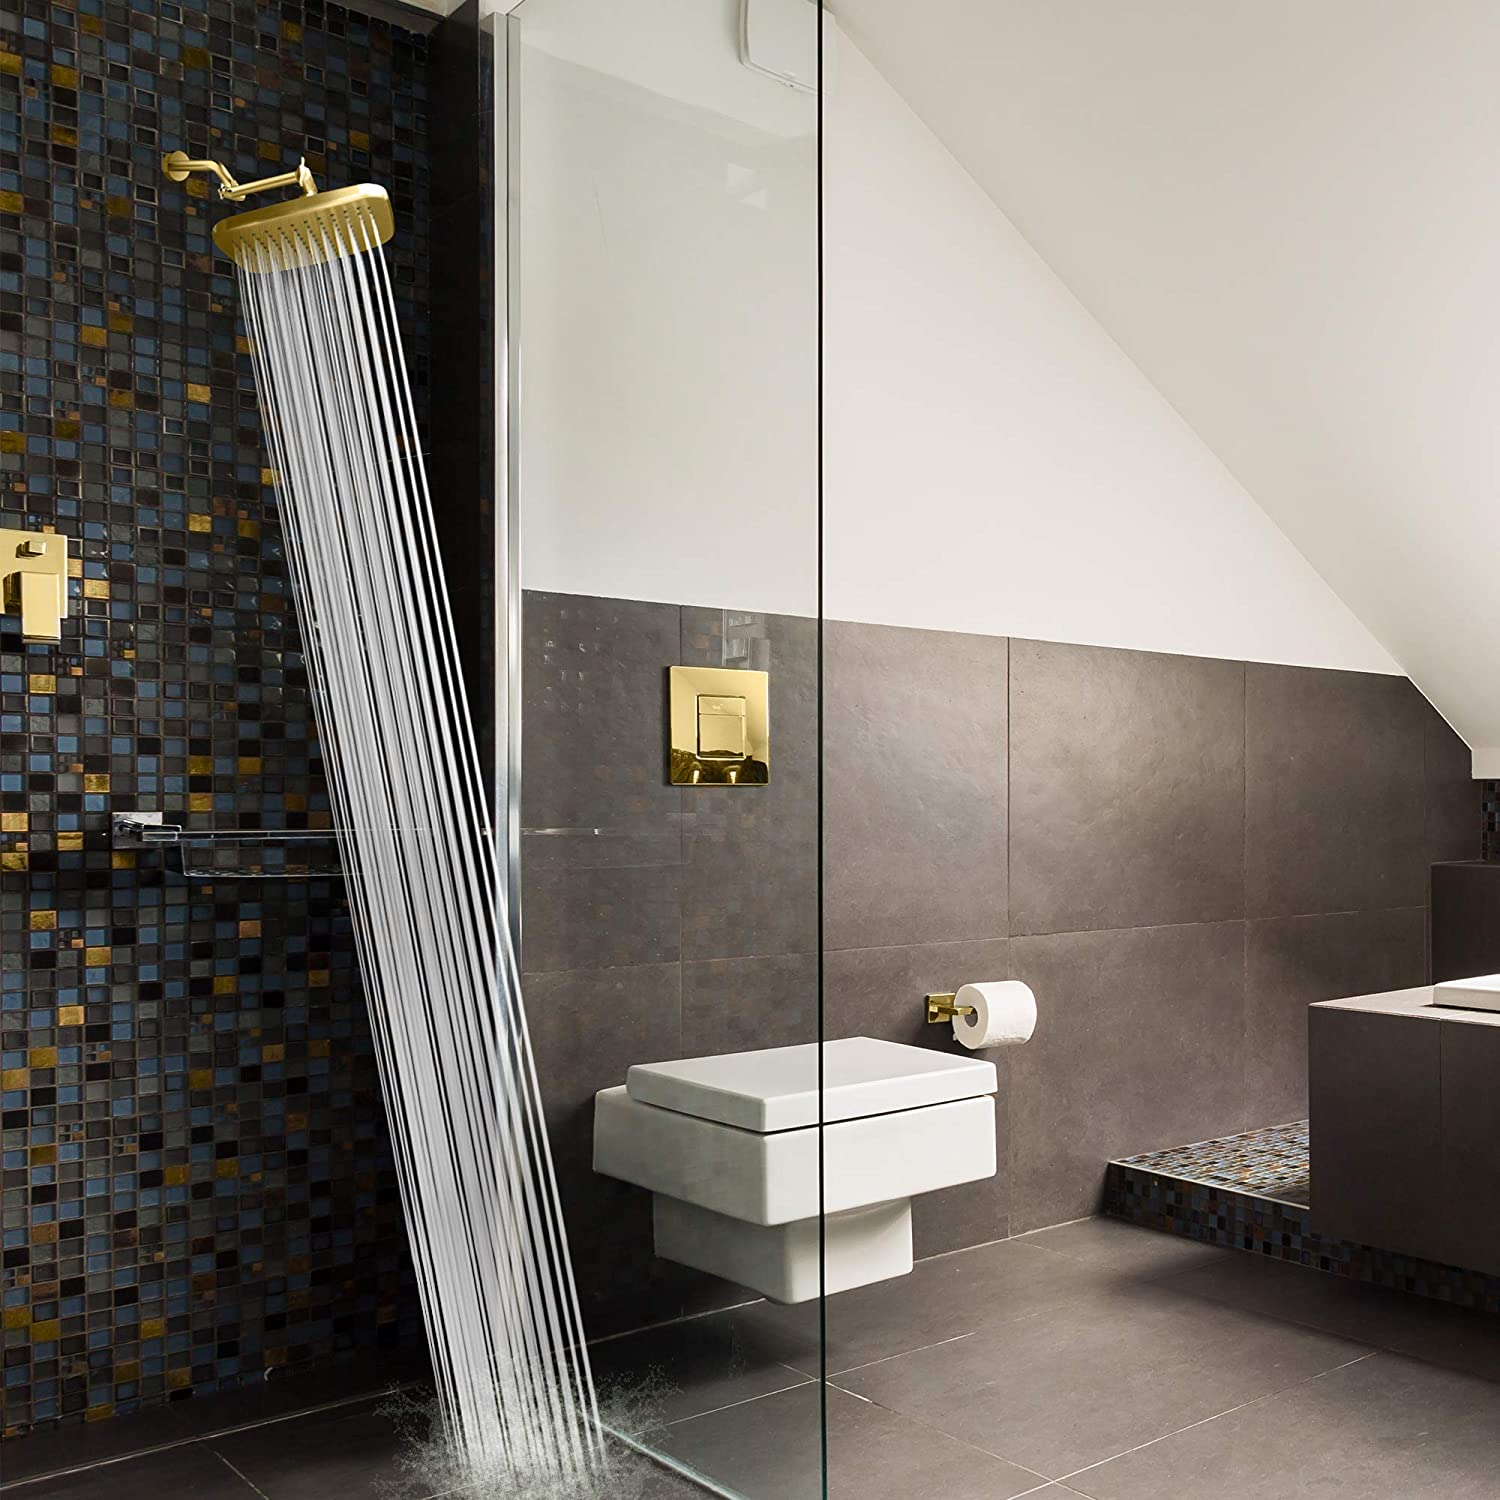 MAXX-imize Your Rainfall with Easy-to-Remove Flow Restrictor Rain Showerhead Elite Series ShowerMaxx 8.5 x 6.5 inch Rectangular High Pressure Rainfall Shower Head Polished Brass//Gold Finish